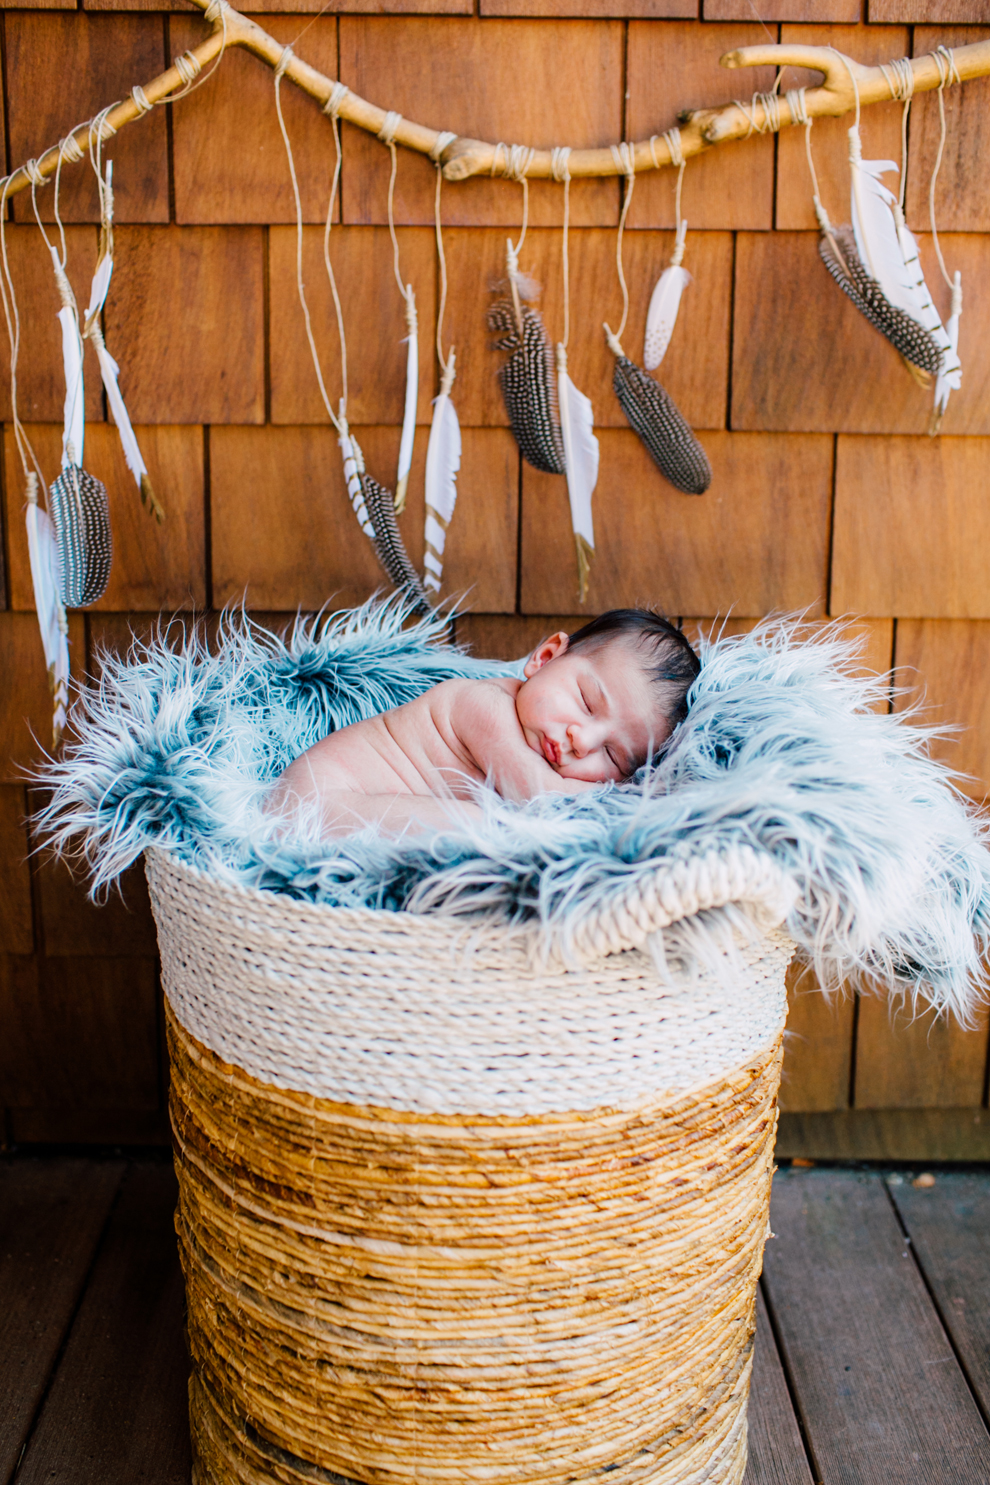 017-bellingham-washington-lifestyle-newborn-photographer-baby-mia.jpg